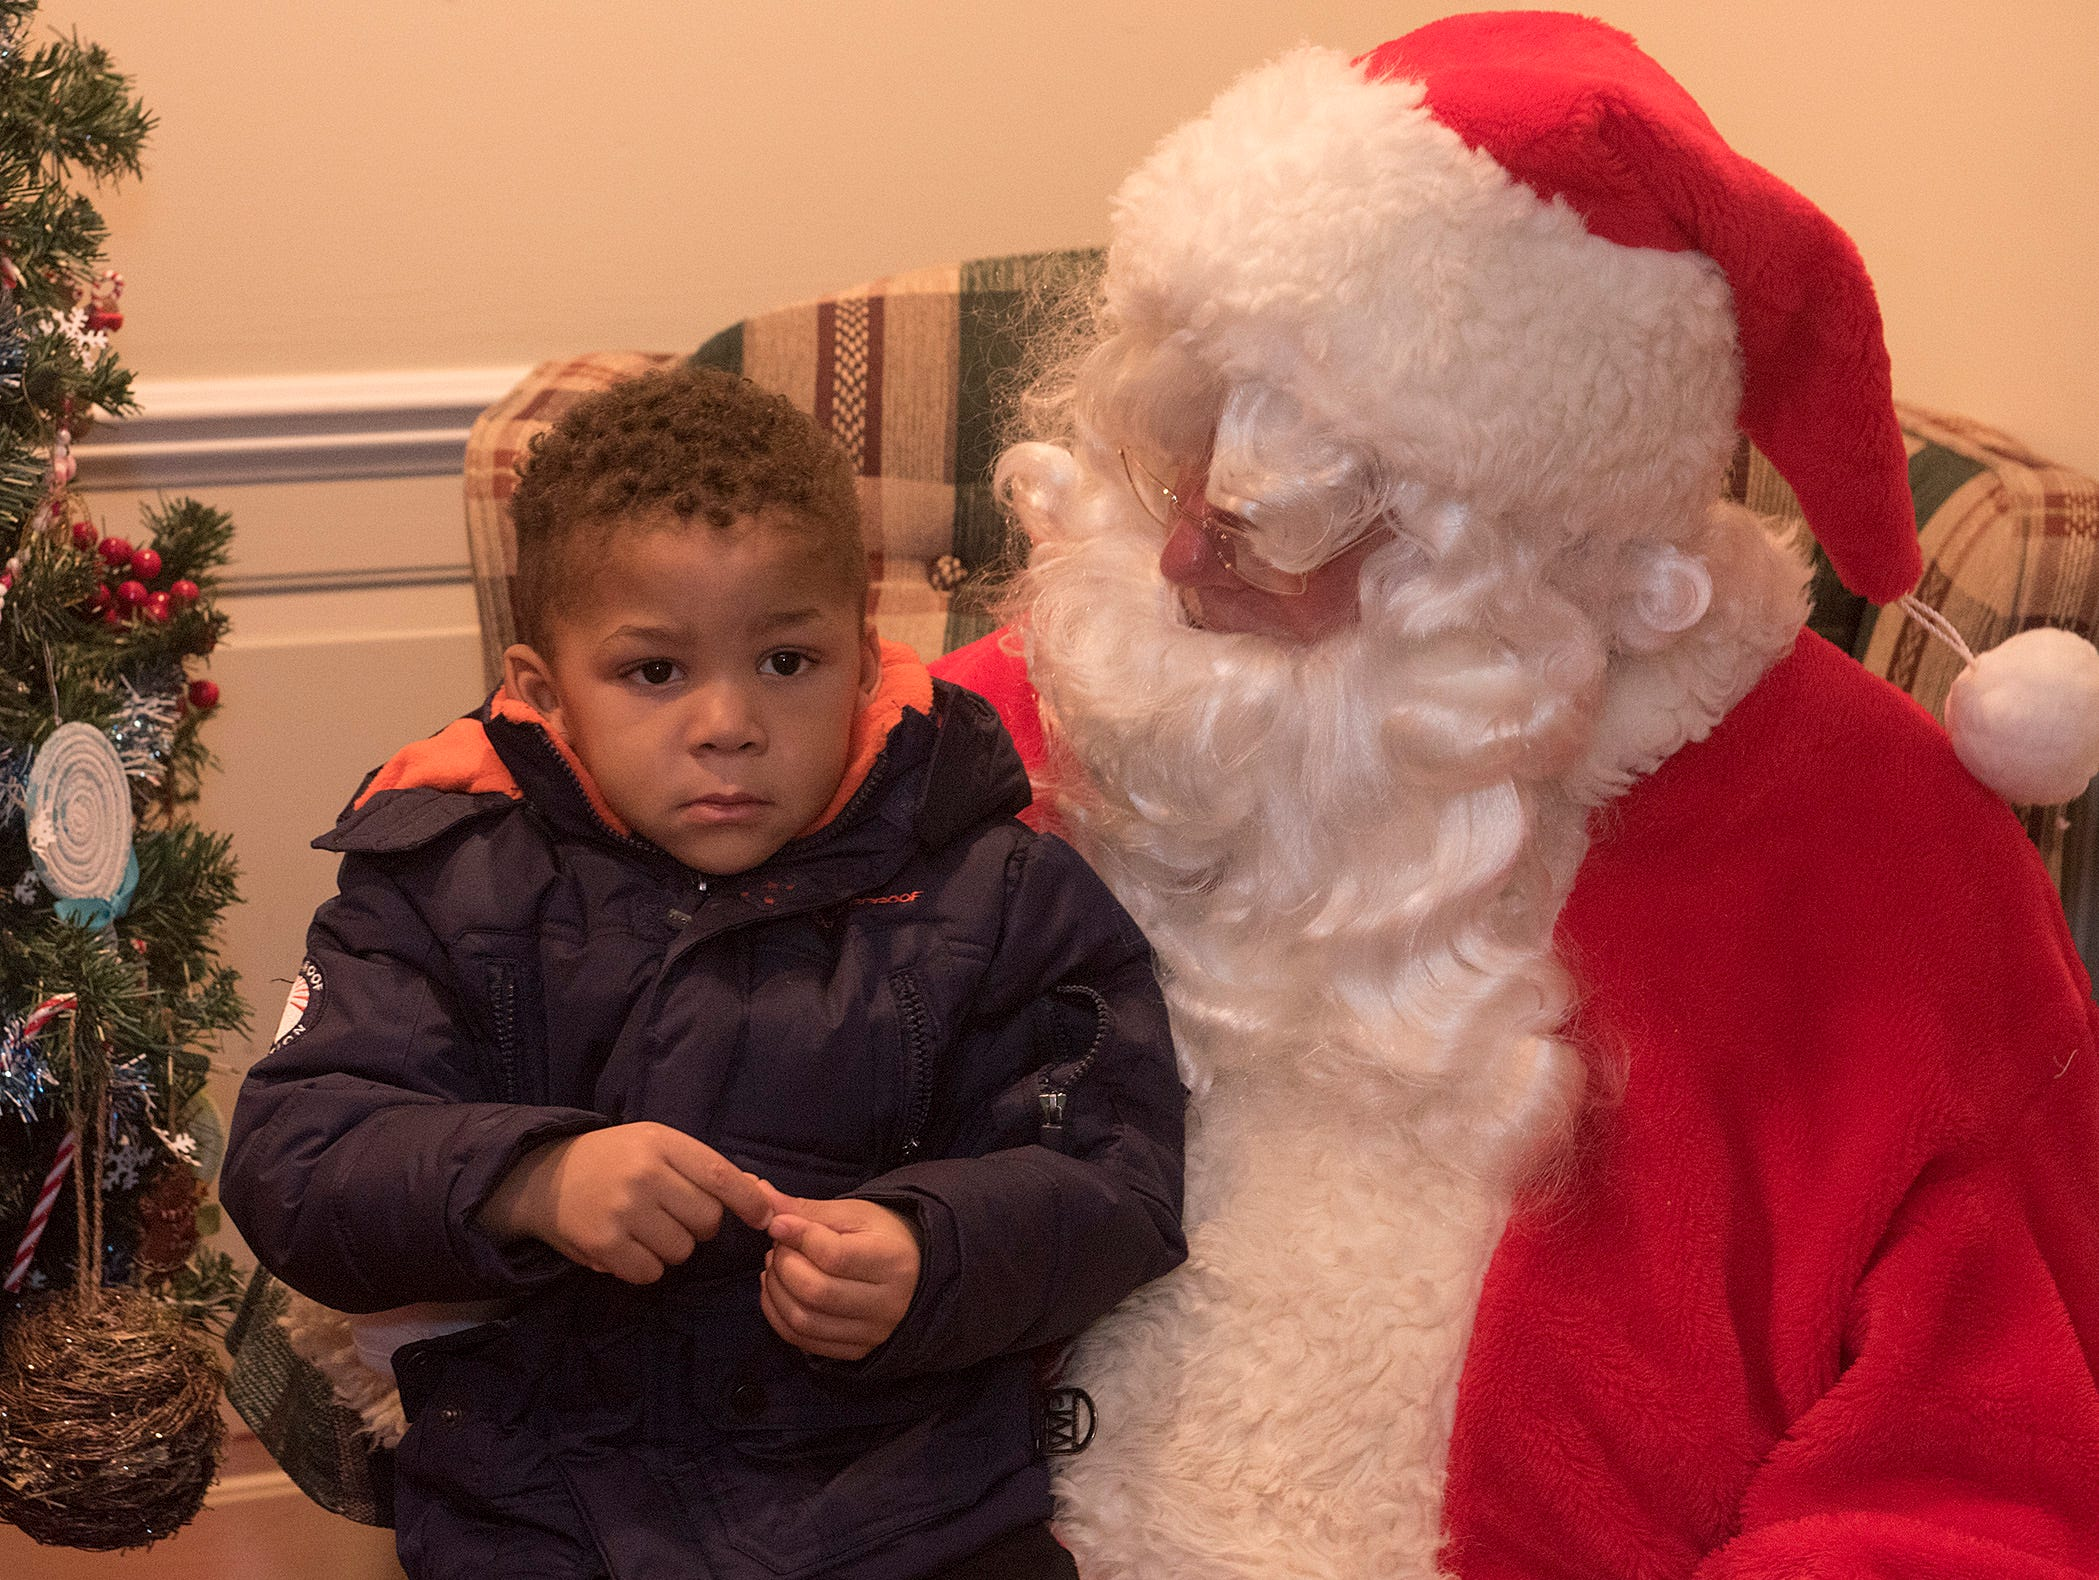 Kayson Woods doesn't look too sure about the big guy in the red suit.